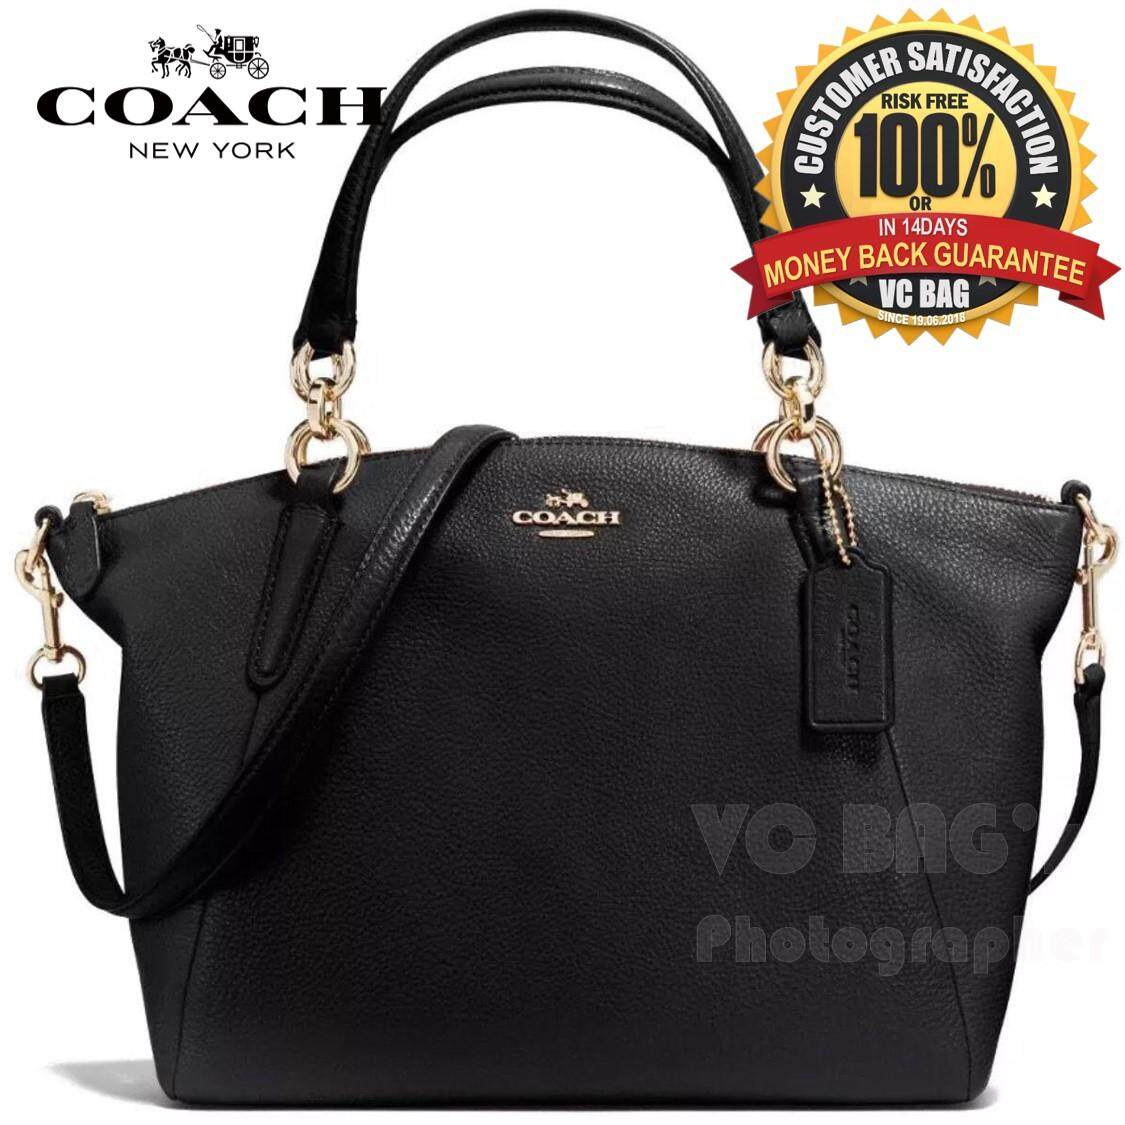 bea9374dda Coach Women Cross Body   Shoulder Bags price in Malaysia - Best ...